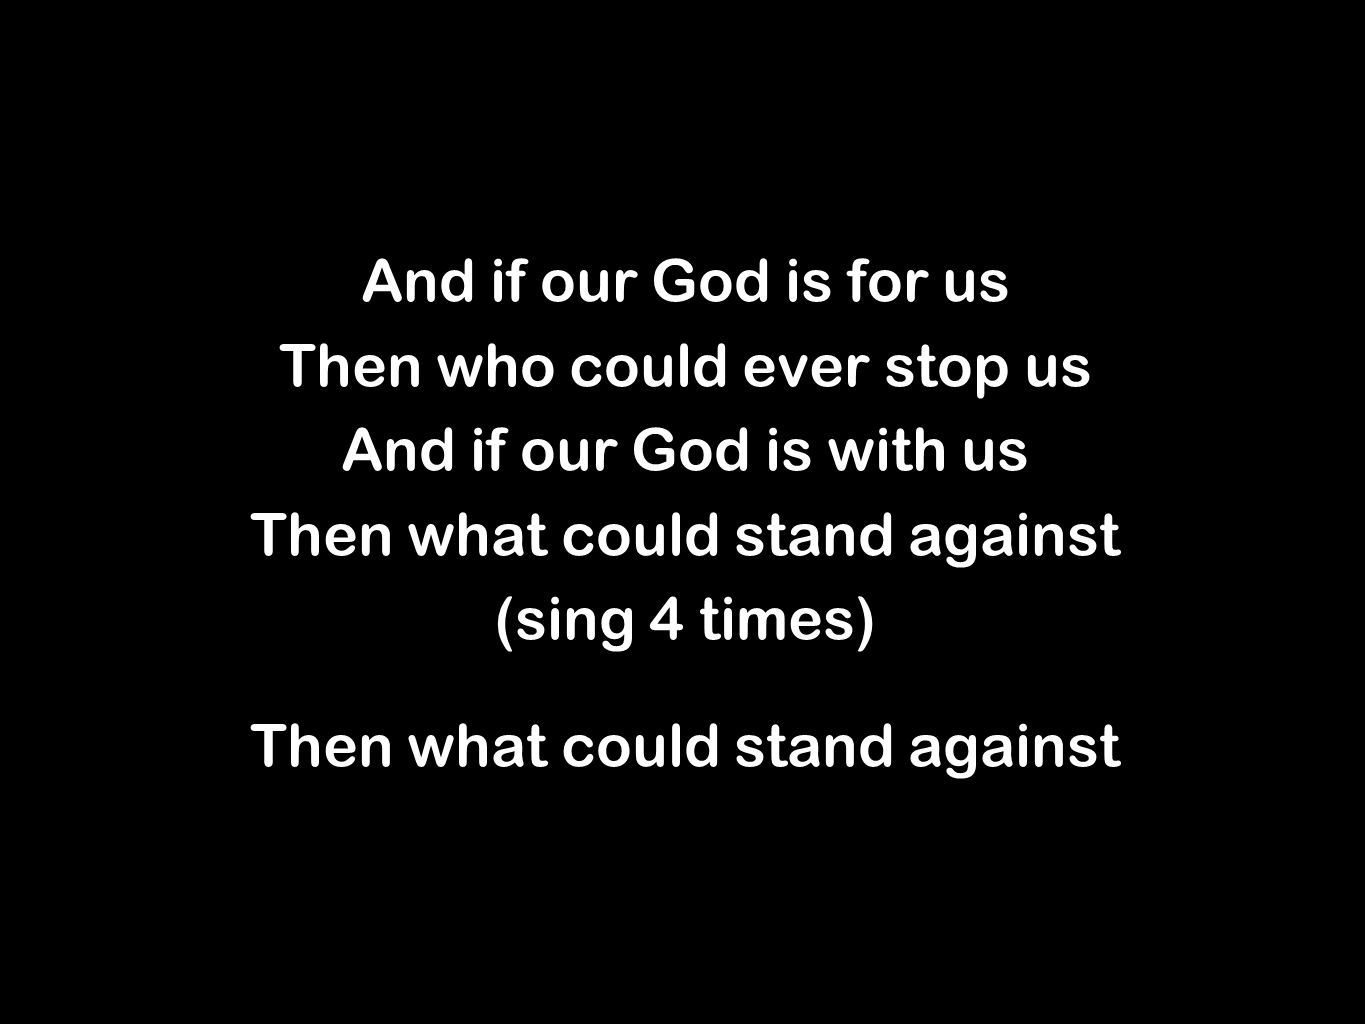 And if our God is for us Then who could ever stop us And if our God is with us Then what could stand against (sing 4 times) Then what could stand against And if our God is for us Then who could ever stop us And if our God is with us Then what could stand against (sing 4 times) Then what could stand against